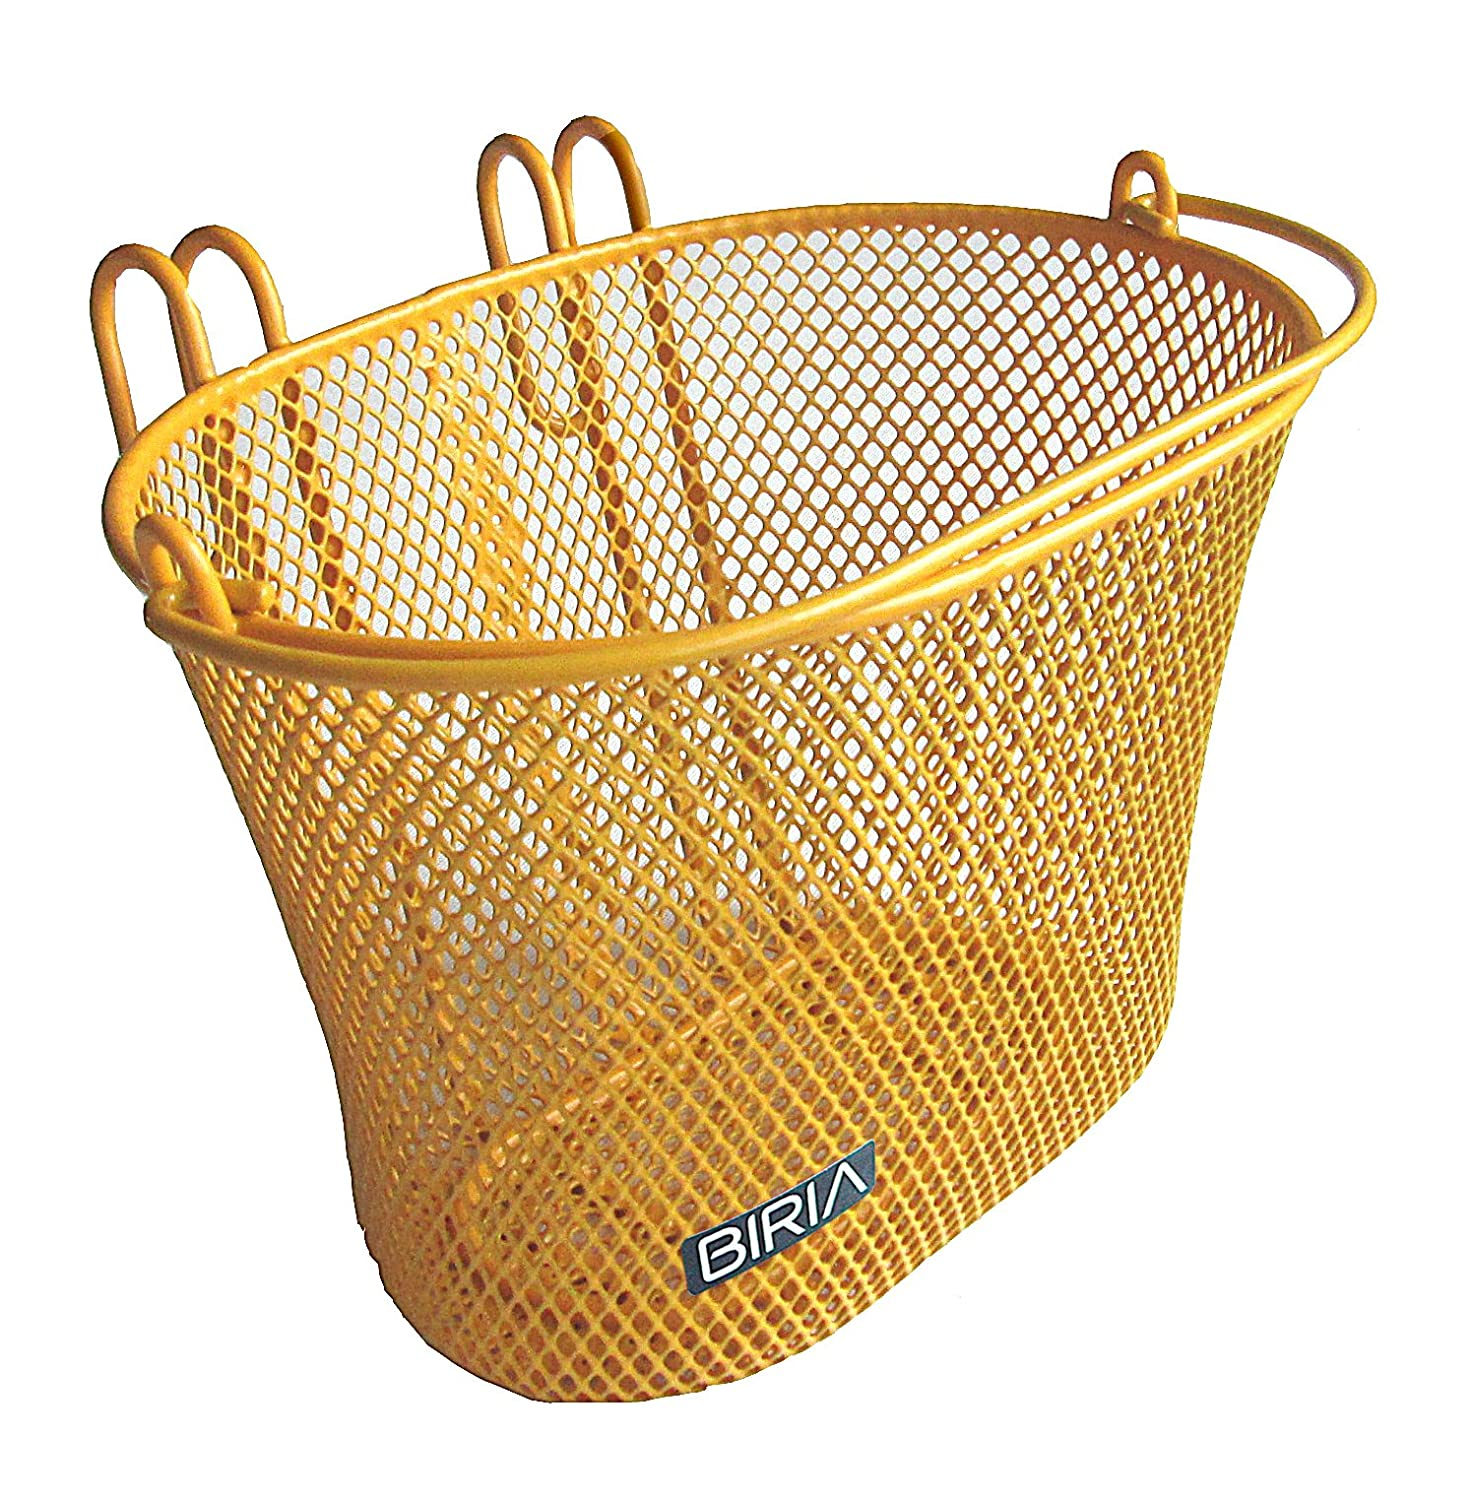 basket bike front hooks wire mesh bicycle removable swing handle yellow orange ebay. Black Bedroom Furniture Sets. Home Design Ideas